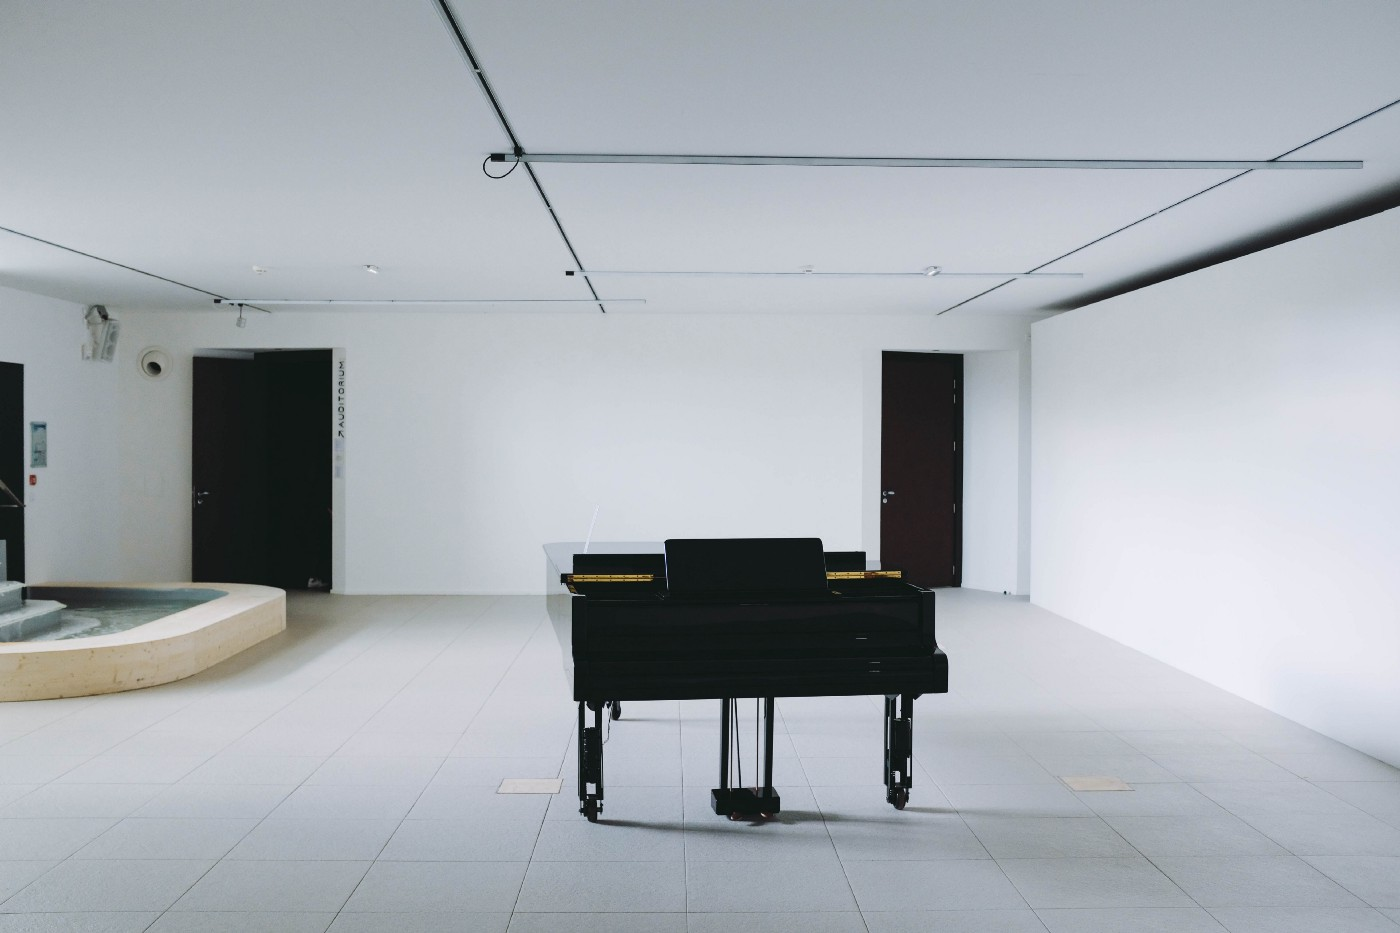 Grand piano in an empty white room